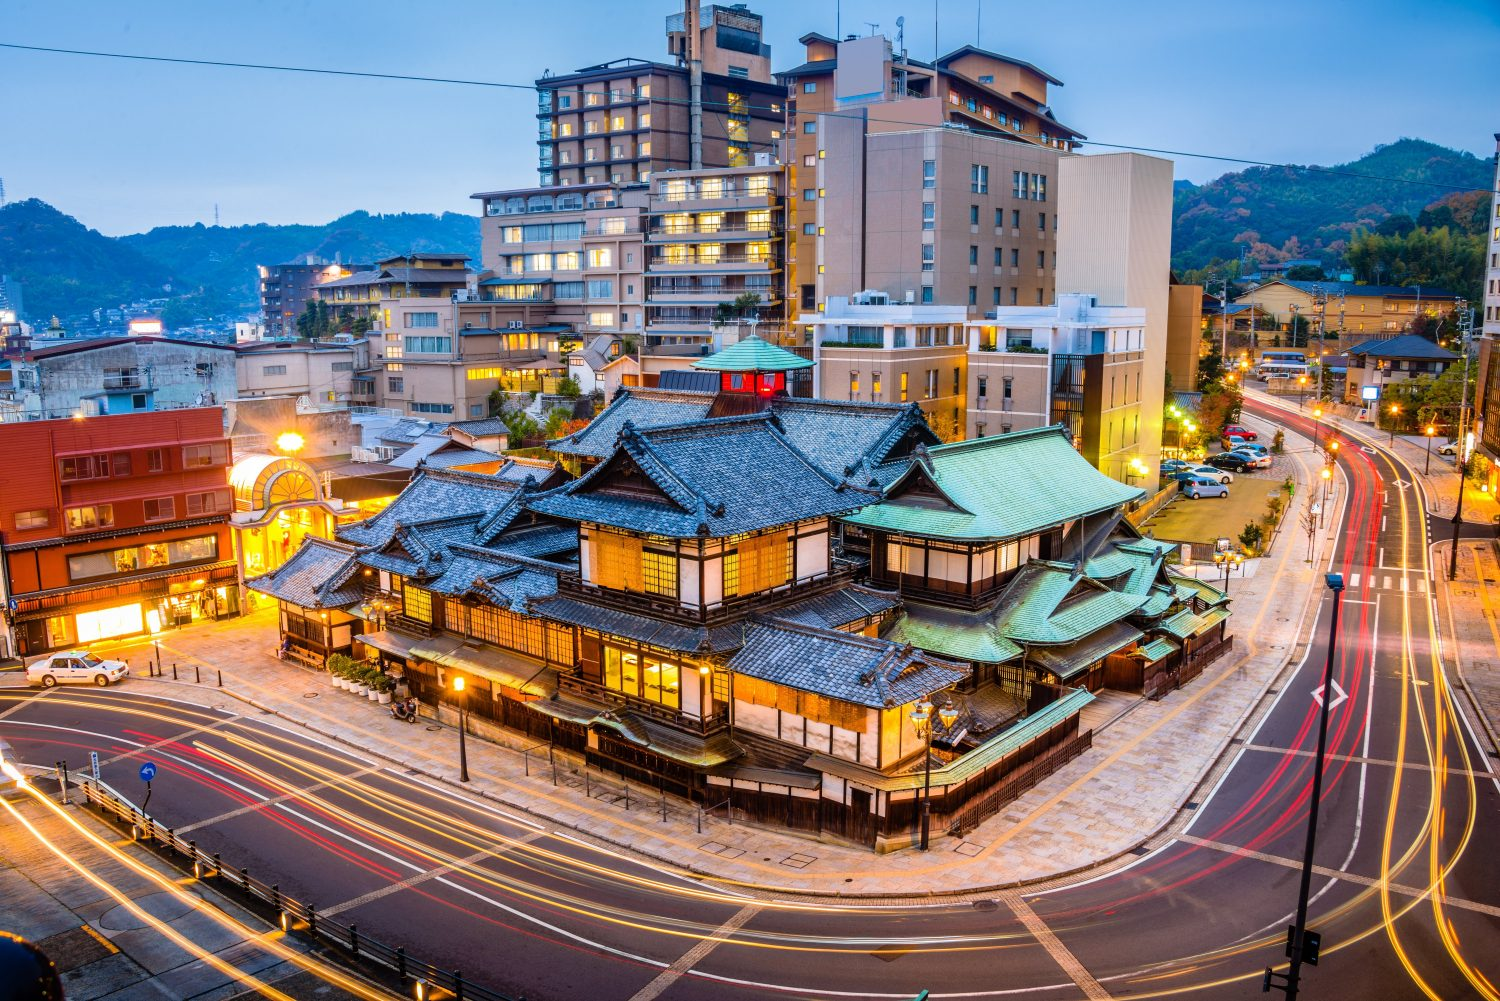 Experience The Oldest Onsen Private Package Tour